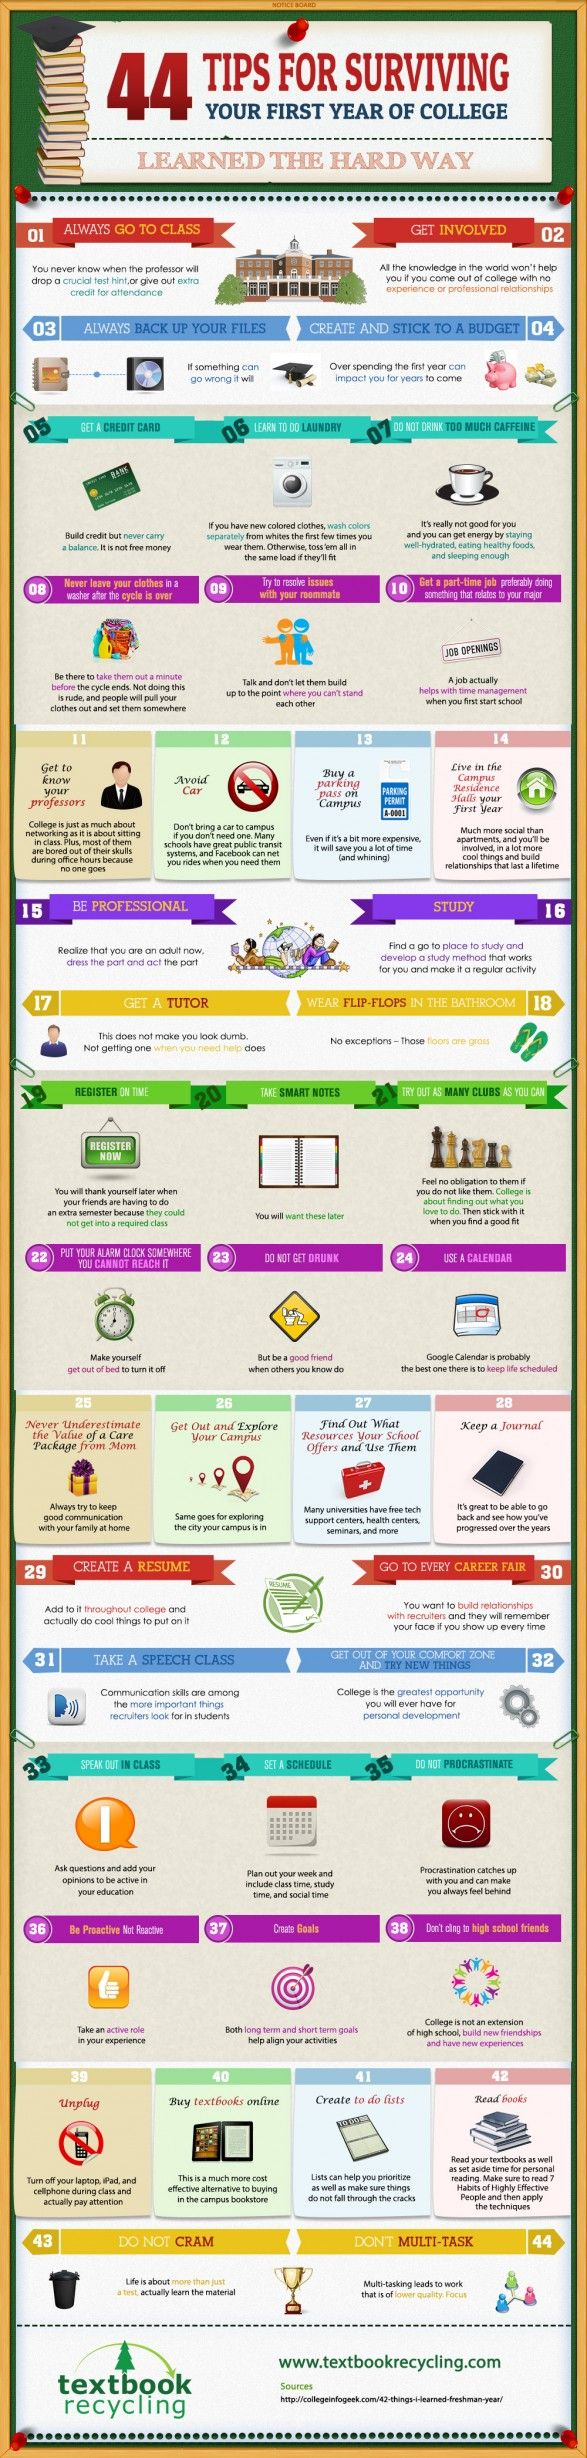 44 tips to survive your first year of college #infograph #coolinfograph